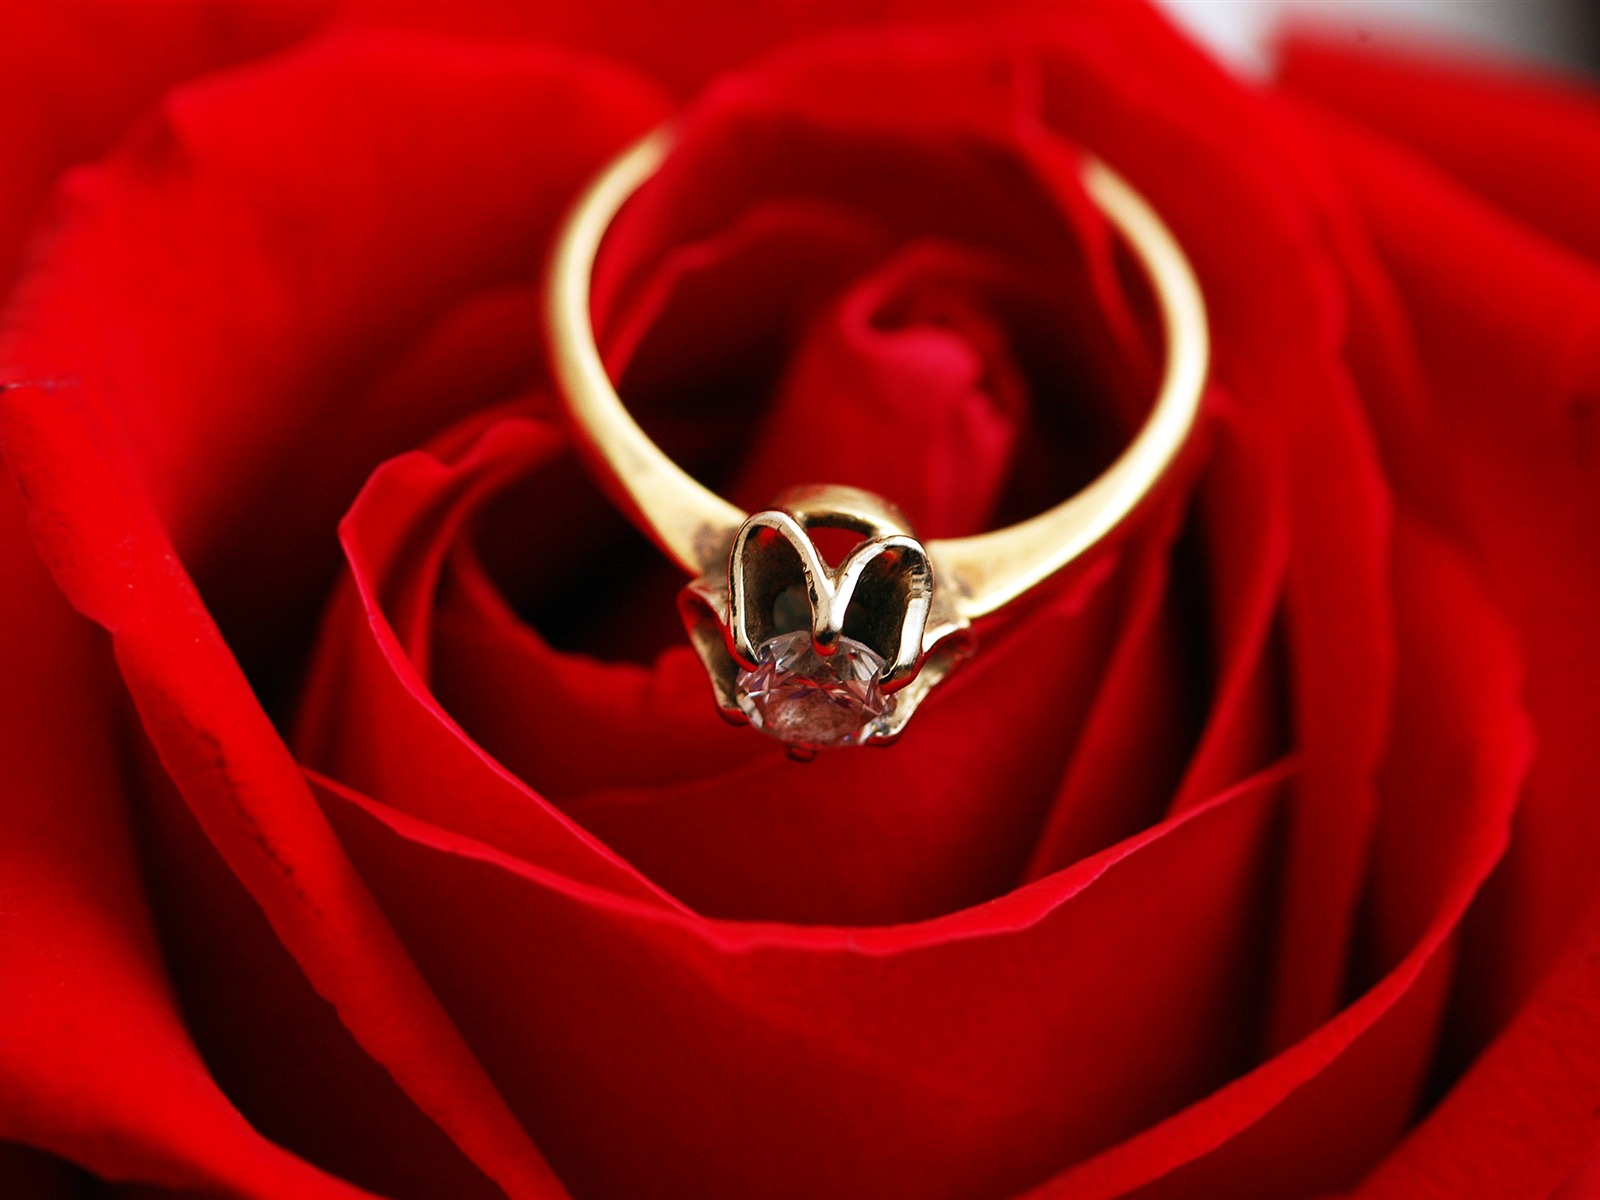 Romantic love golden ring red rose - 1600x1200 wallpaper download